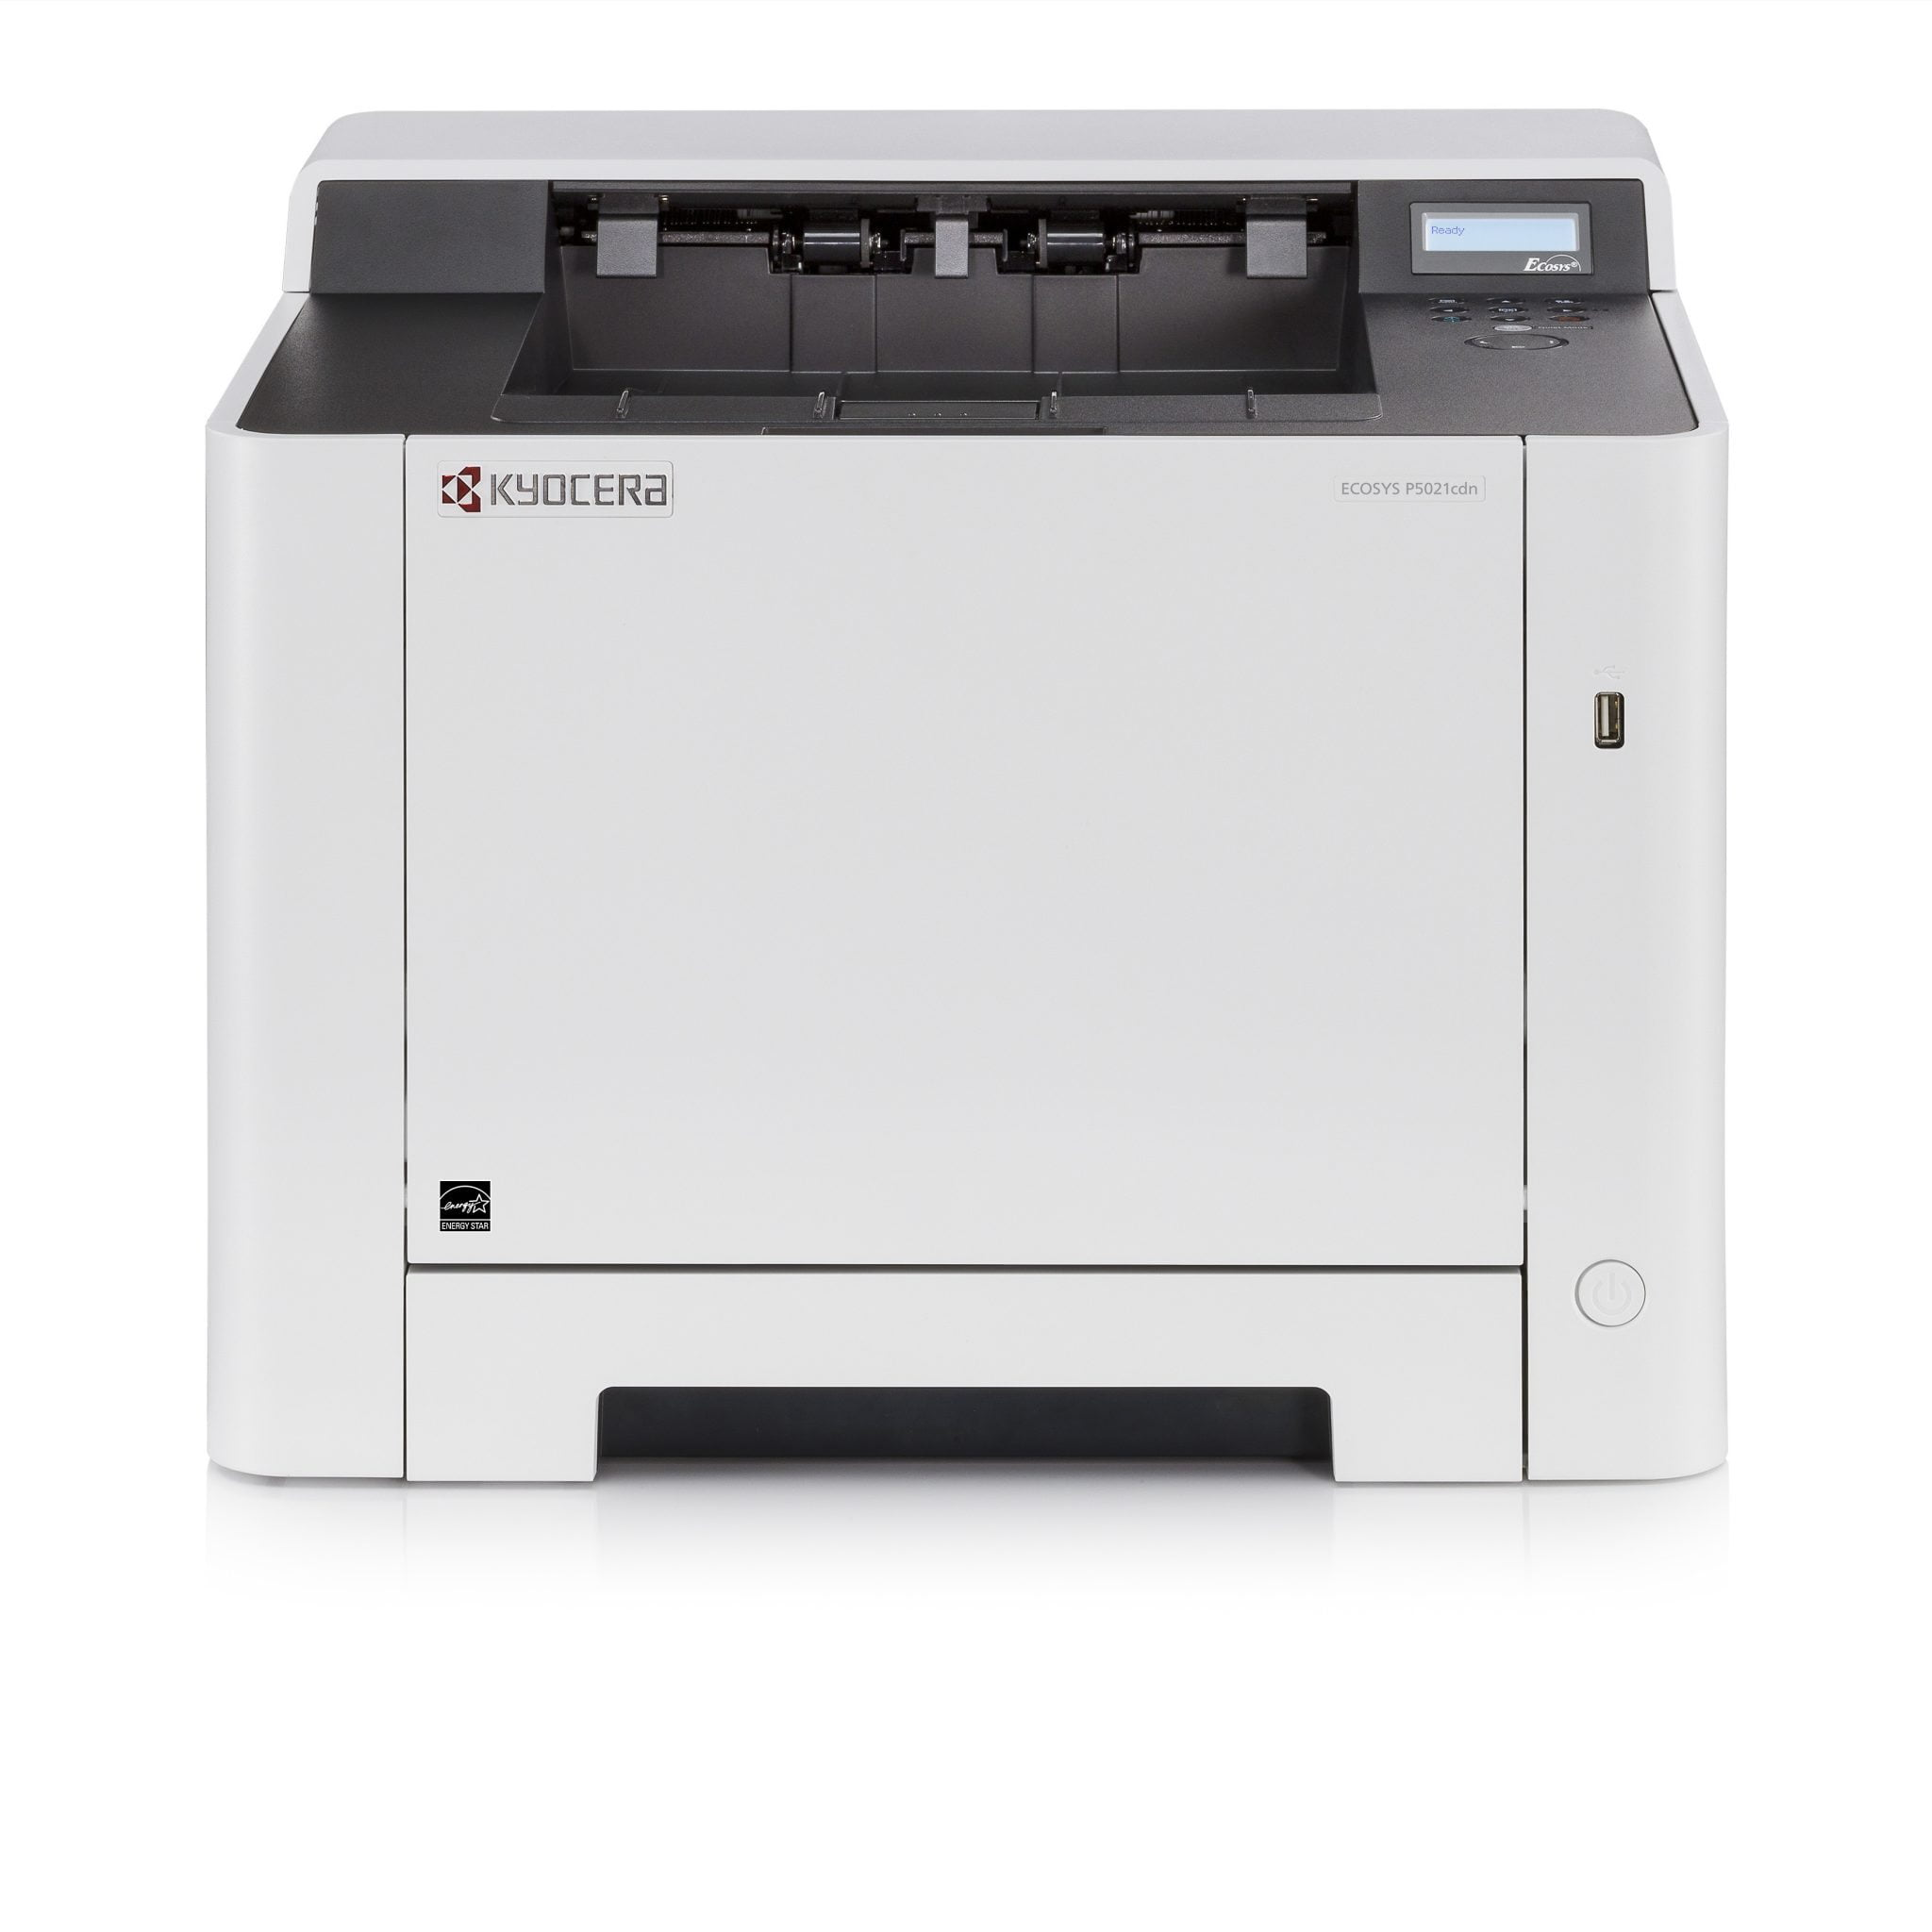 Kyocera ECOSYS P5021cdw Colour Laser Printer & Wi-Fi